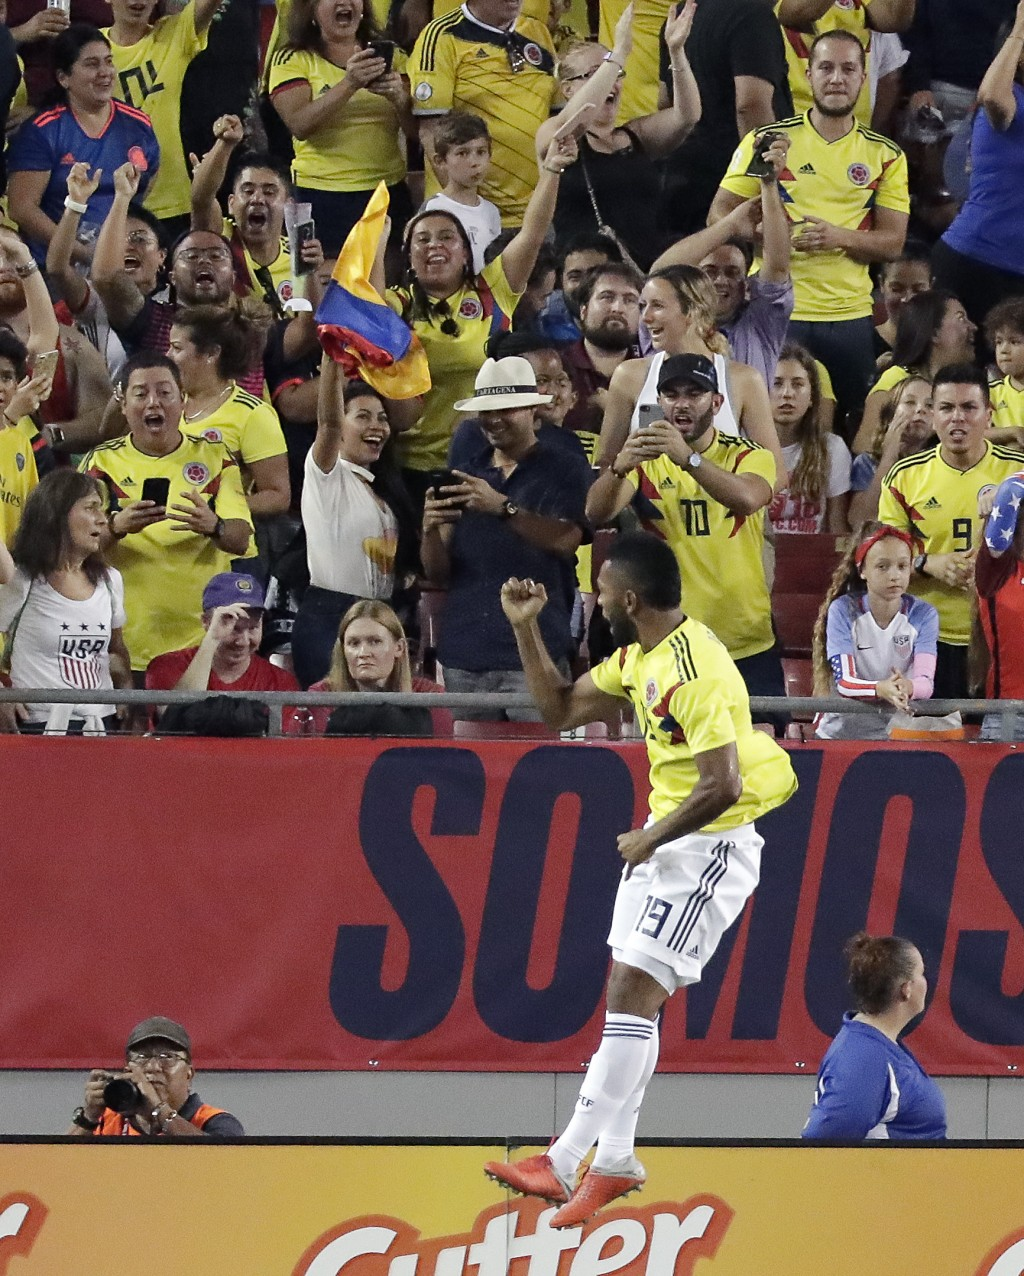 Colombia's Miguel Angel Borja (19) celebrates his goal against the United States in front of fans during the second half of an international friendly